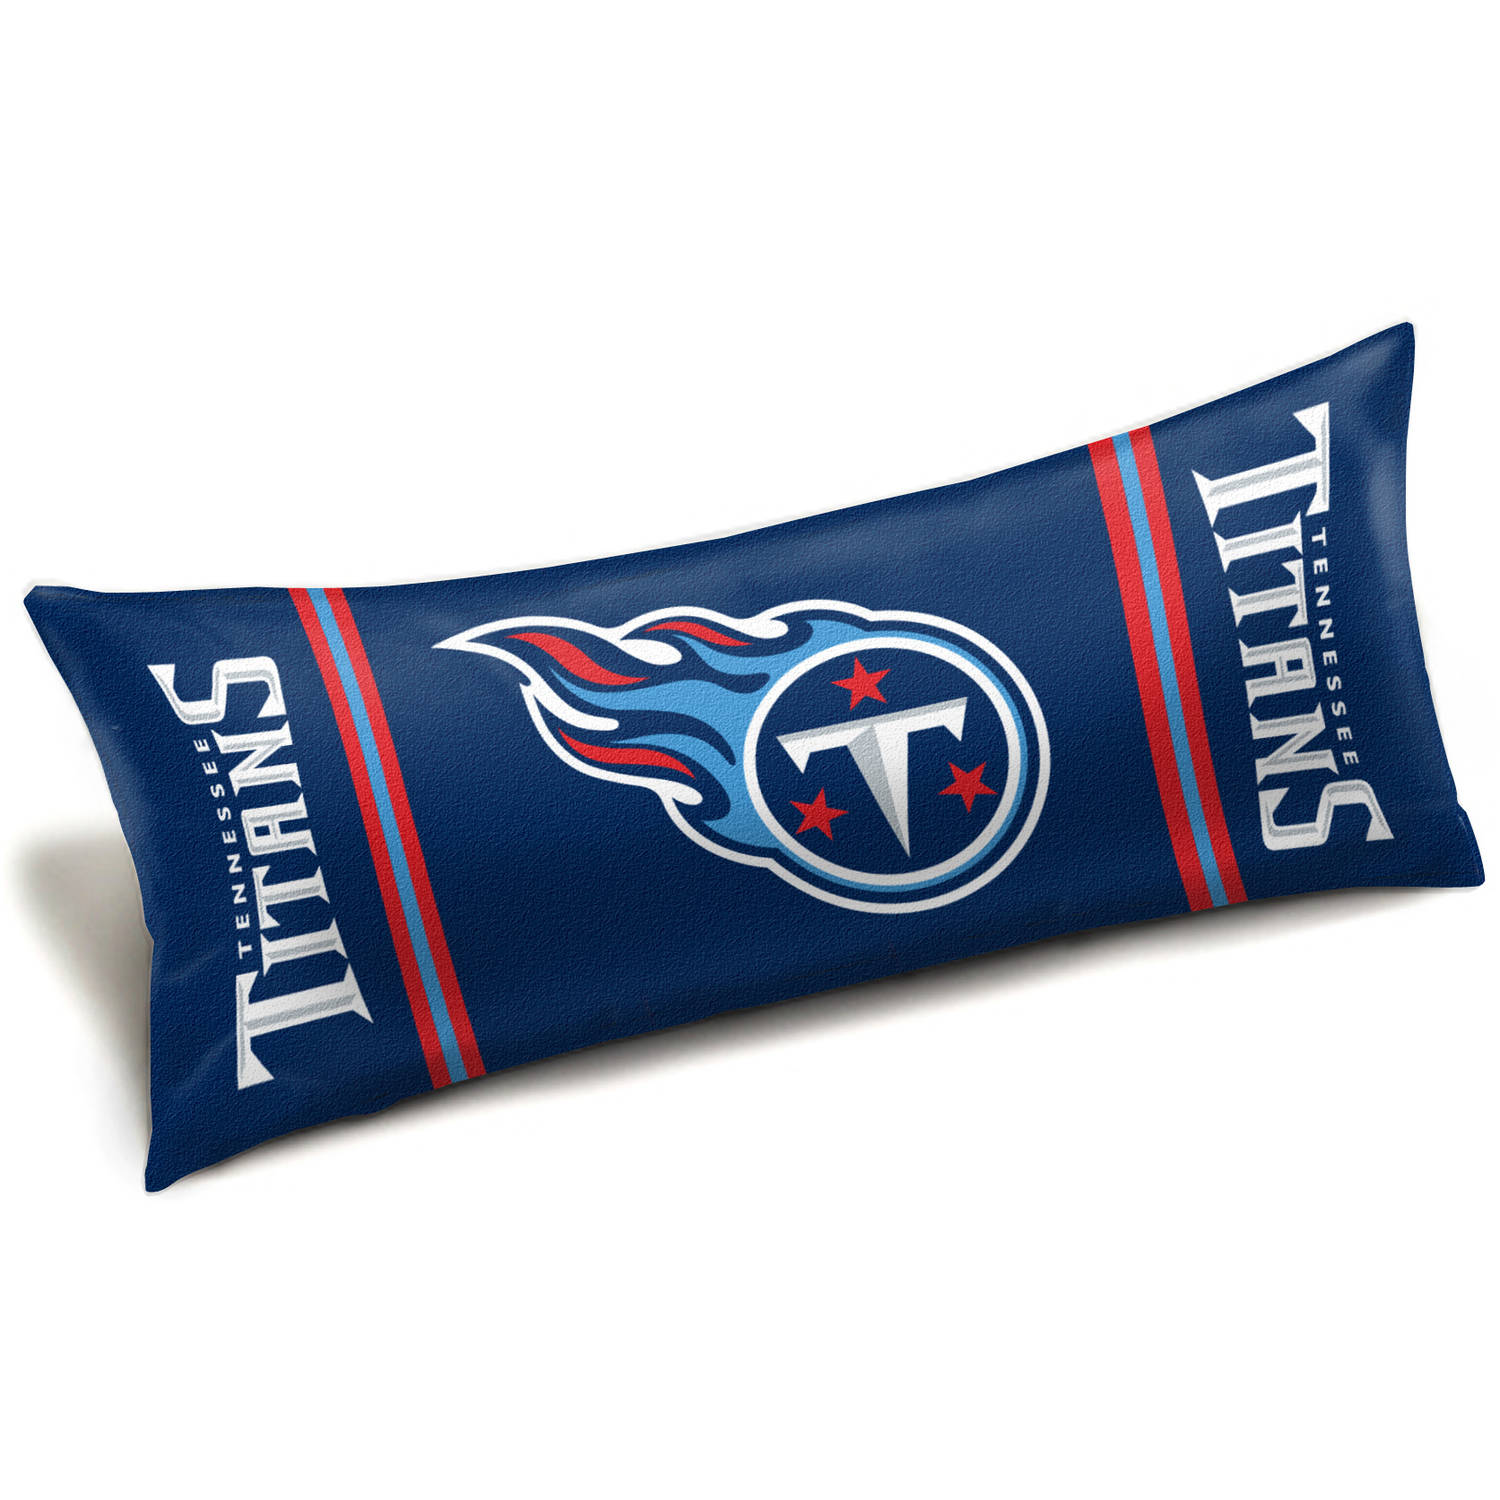 NFL Tennessee Titans Body Pillow, 1 Each